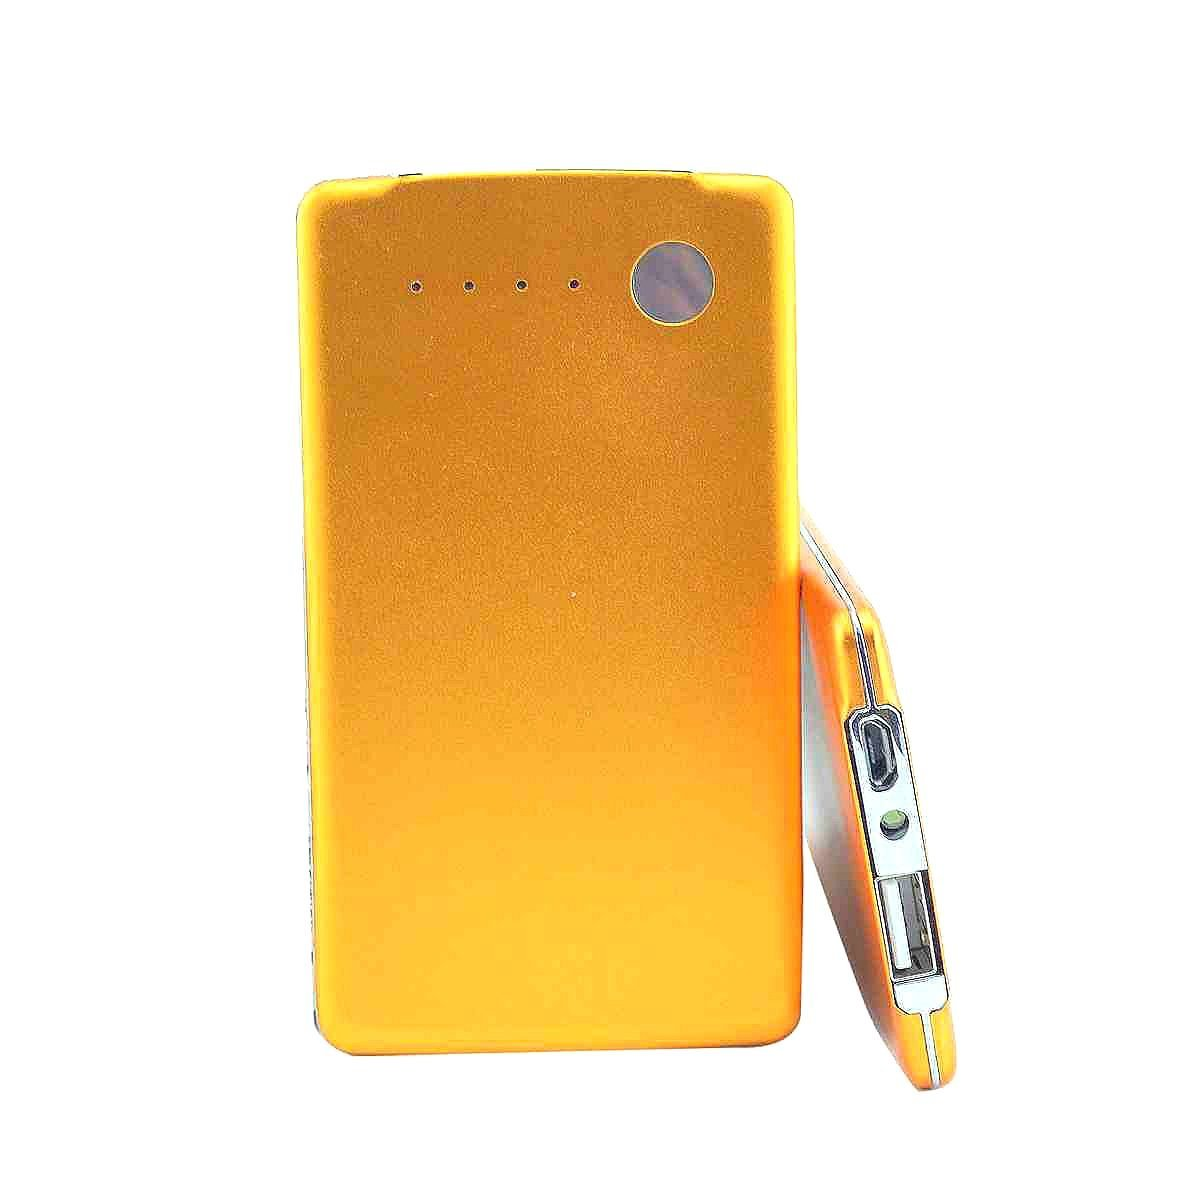 E-TOP(TM) 4500mah External Battery Pack High Capacity Power Bank Charger for Apple: Ipad Mini, Iphone 5s, 5c, 5 (Lightning Cable Not Provided)/iphone 4s, 4 3gs 3g Ipad 2, Ipod Touch; Most Android Phones: Samsung Galaxy S3 I9300 S2 S Ii I9100, Galaxy Nexus, Galaxy Note 2; HTC Sensation, One X V One